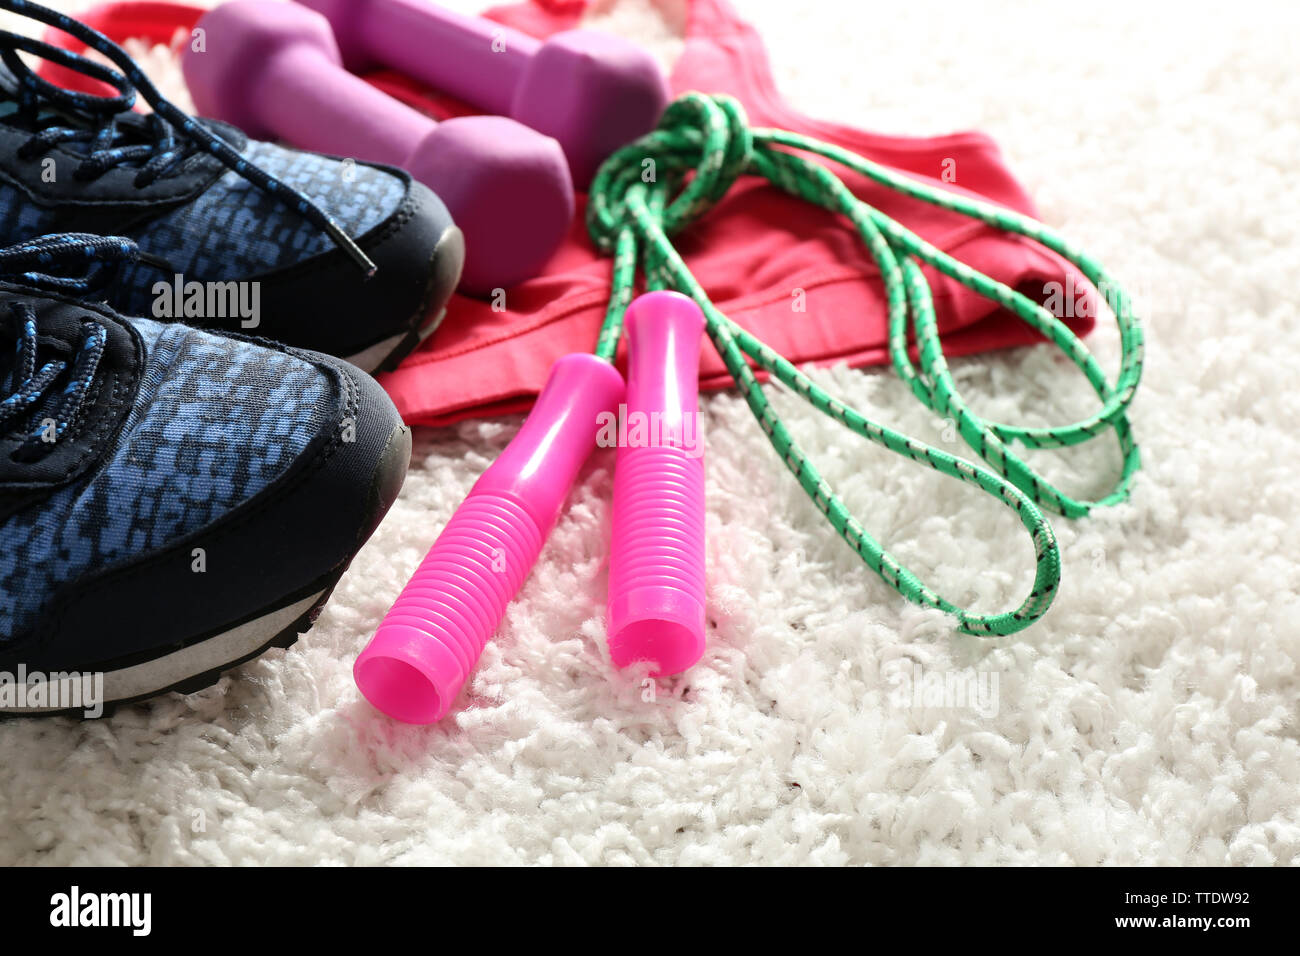 Sport clothes and equipment on white carpet background - Stock Image